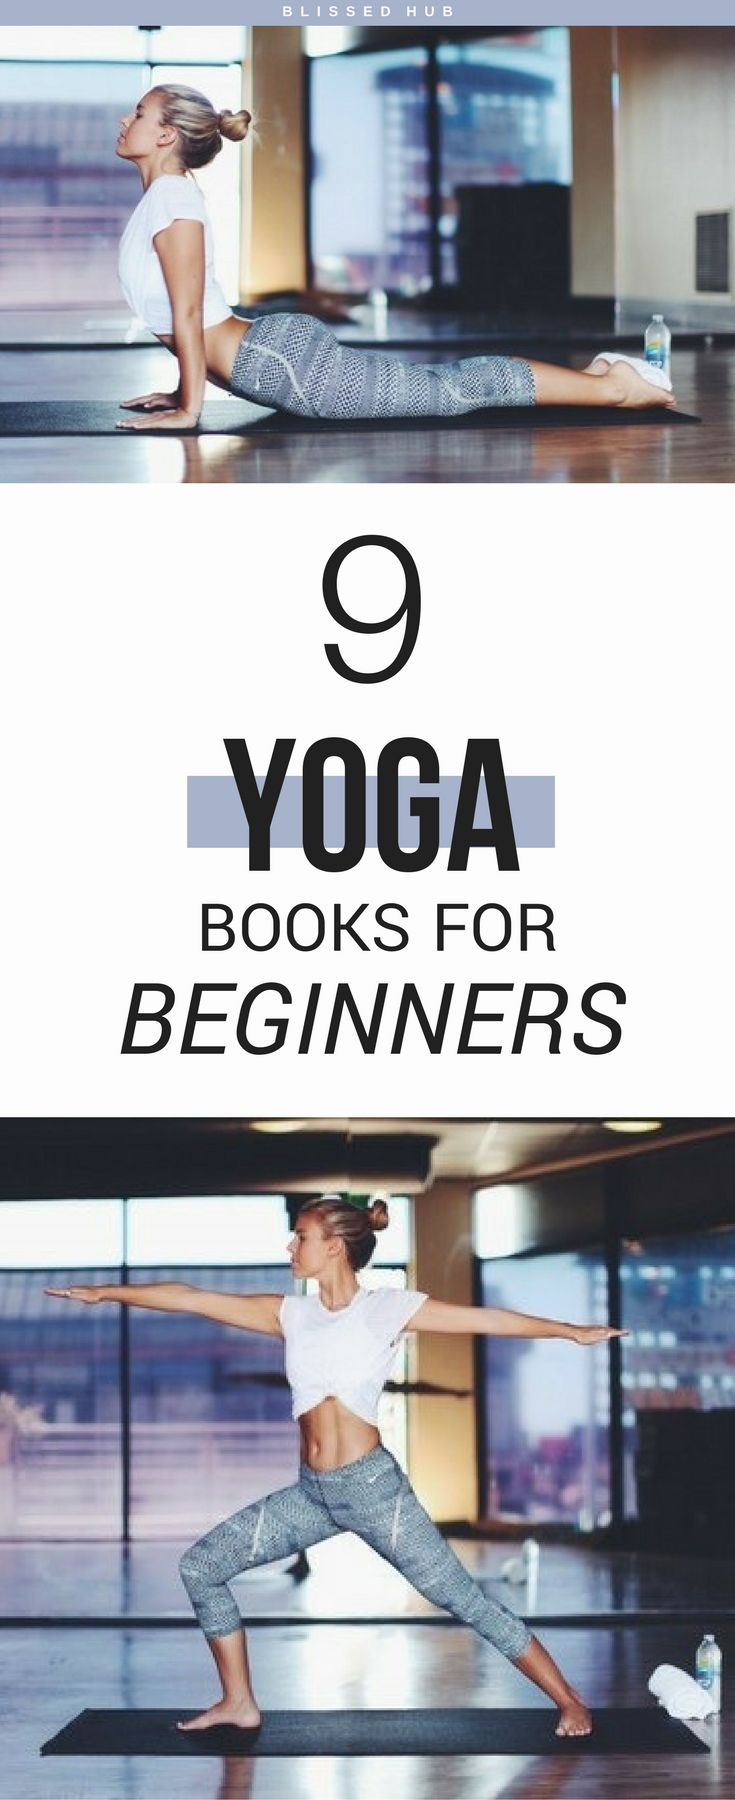 Top 5 Books Every Yogi Should Read | DOYOUYOGA